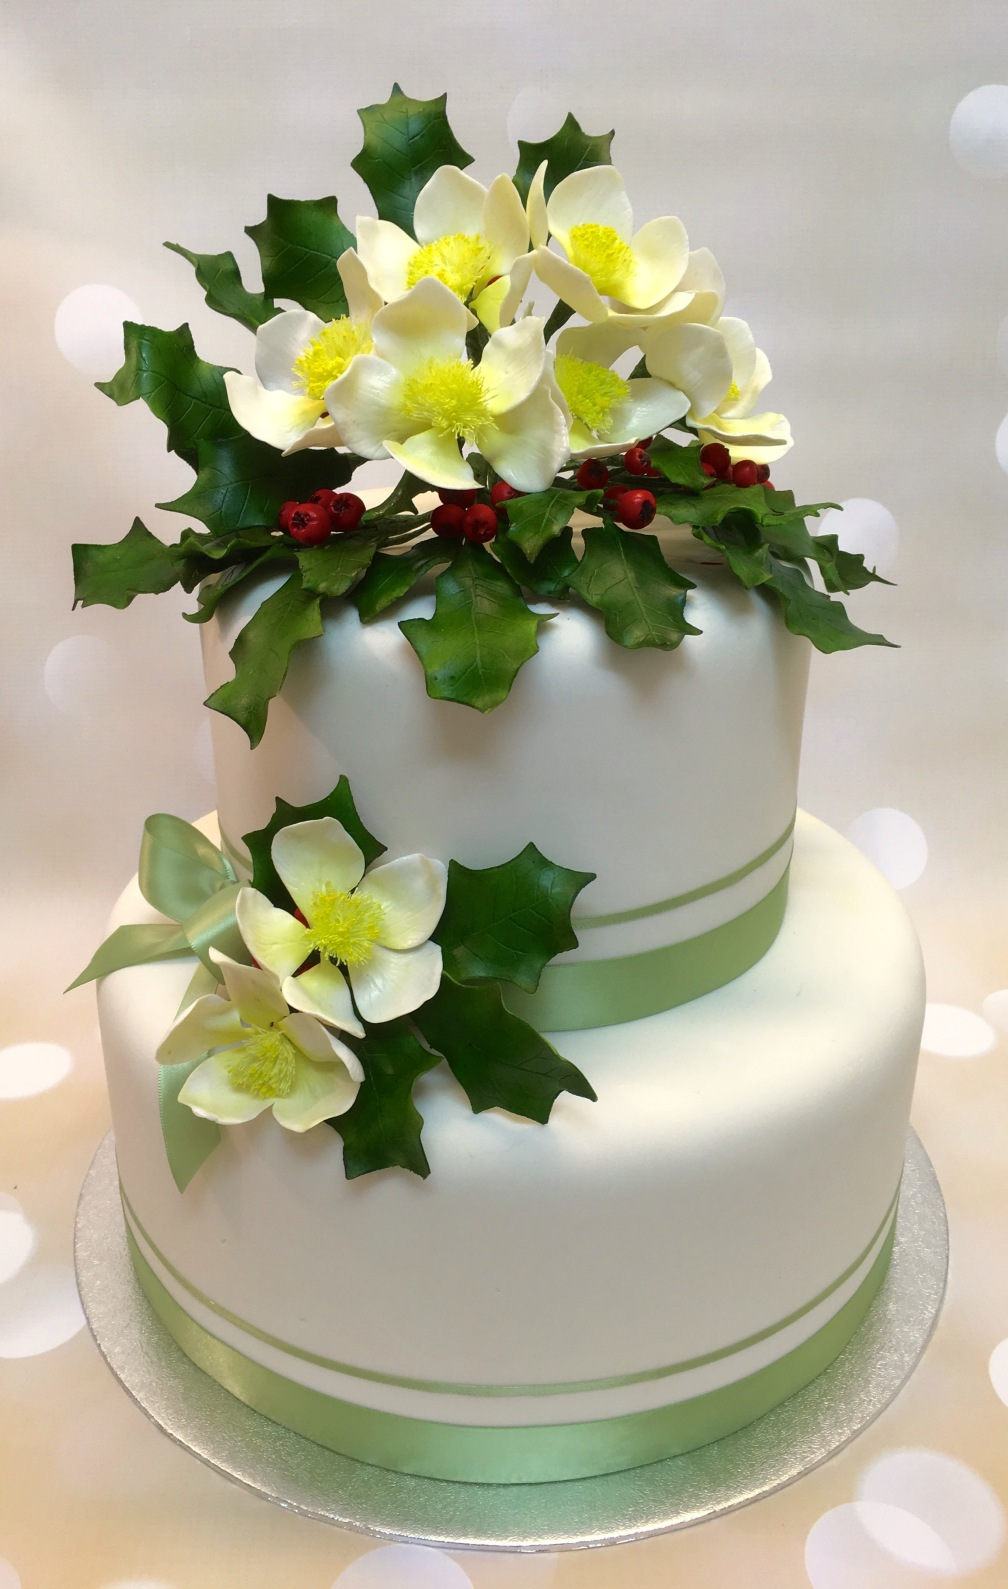 Christmas Rose and Holly Cake 1